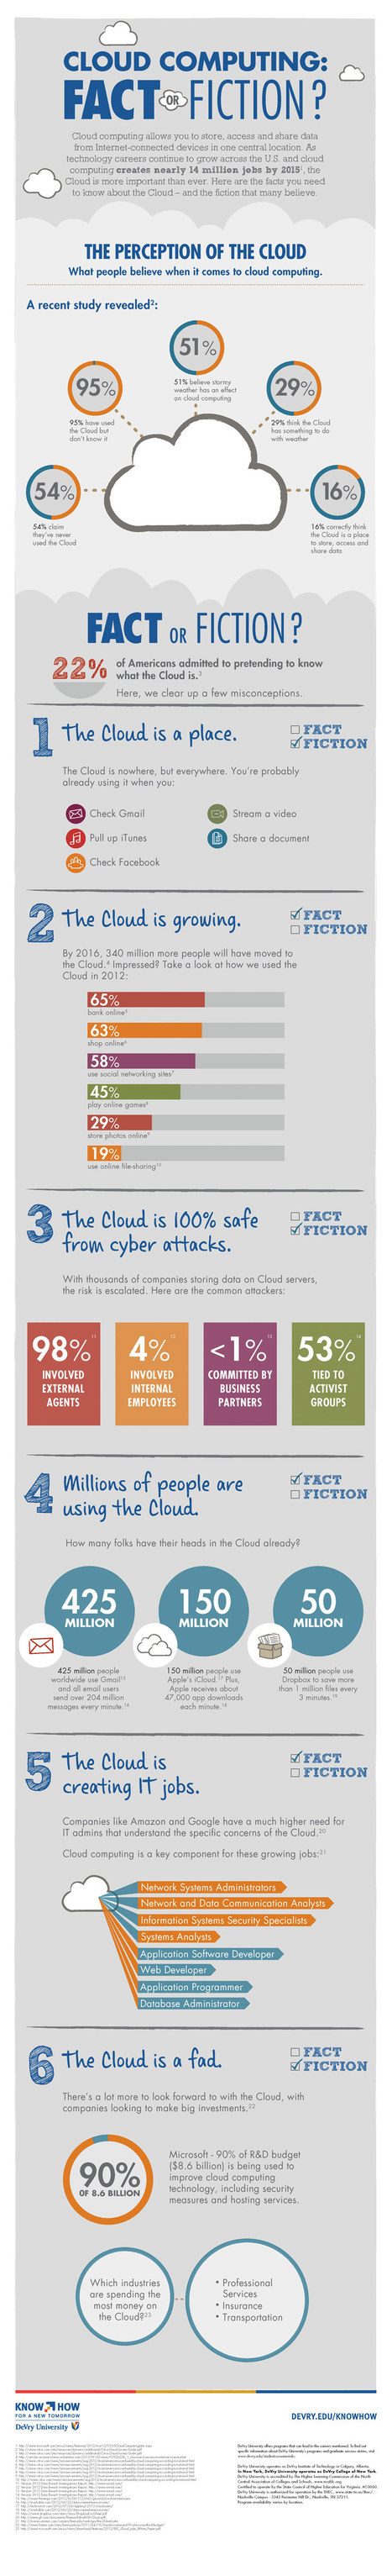 Is Cloud Computing a Fact or Fiction? – infographic /@BerriePelser | WordPress Google SEO and Social Media | Scoop.it